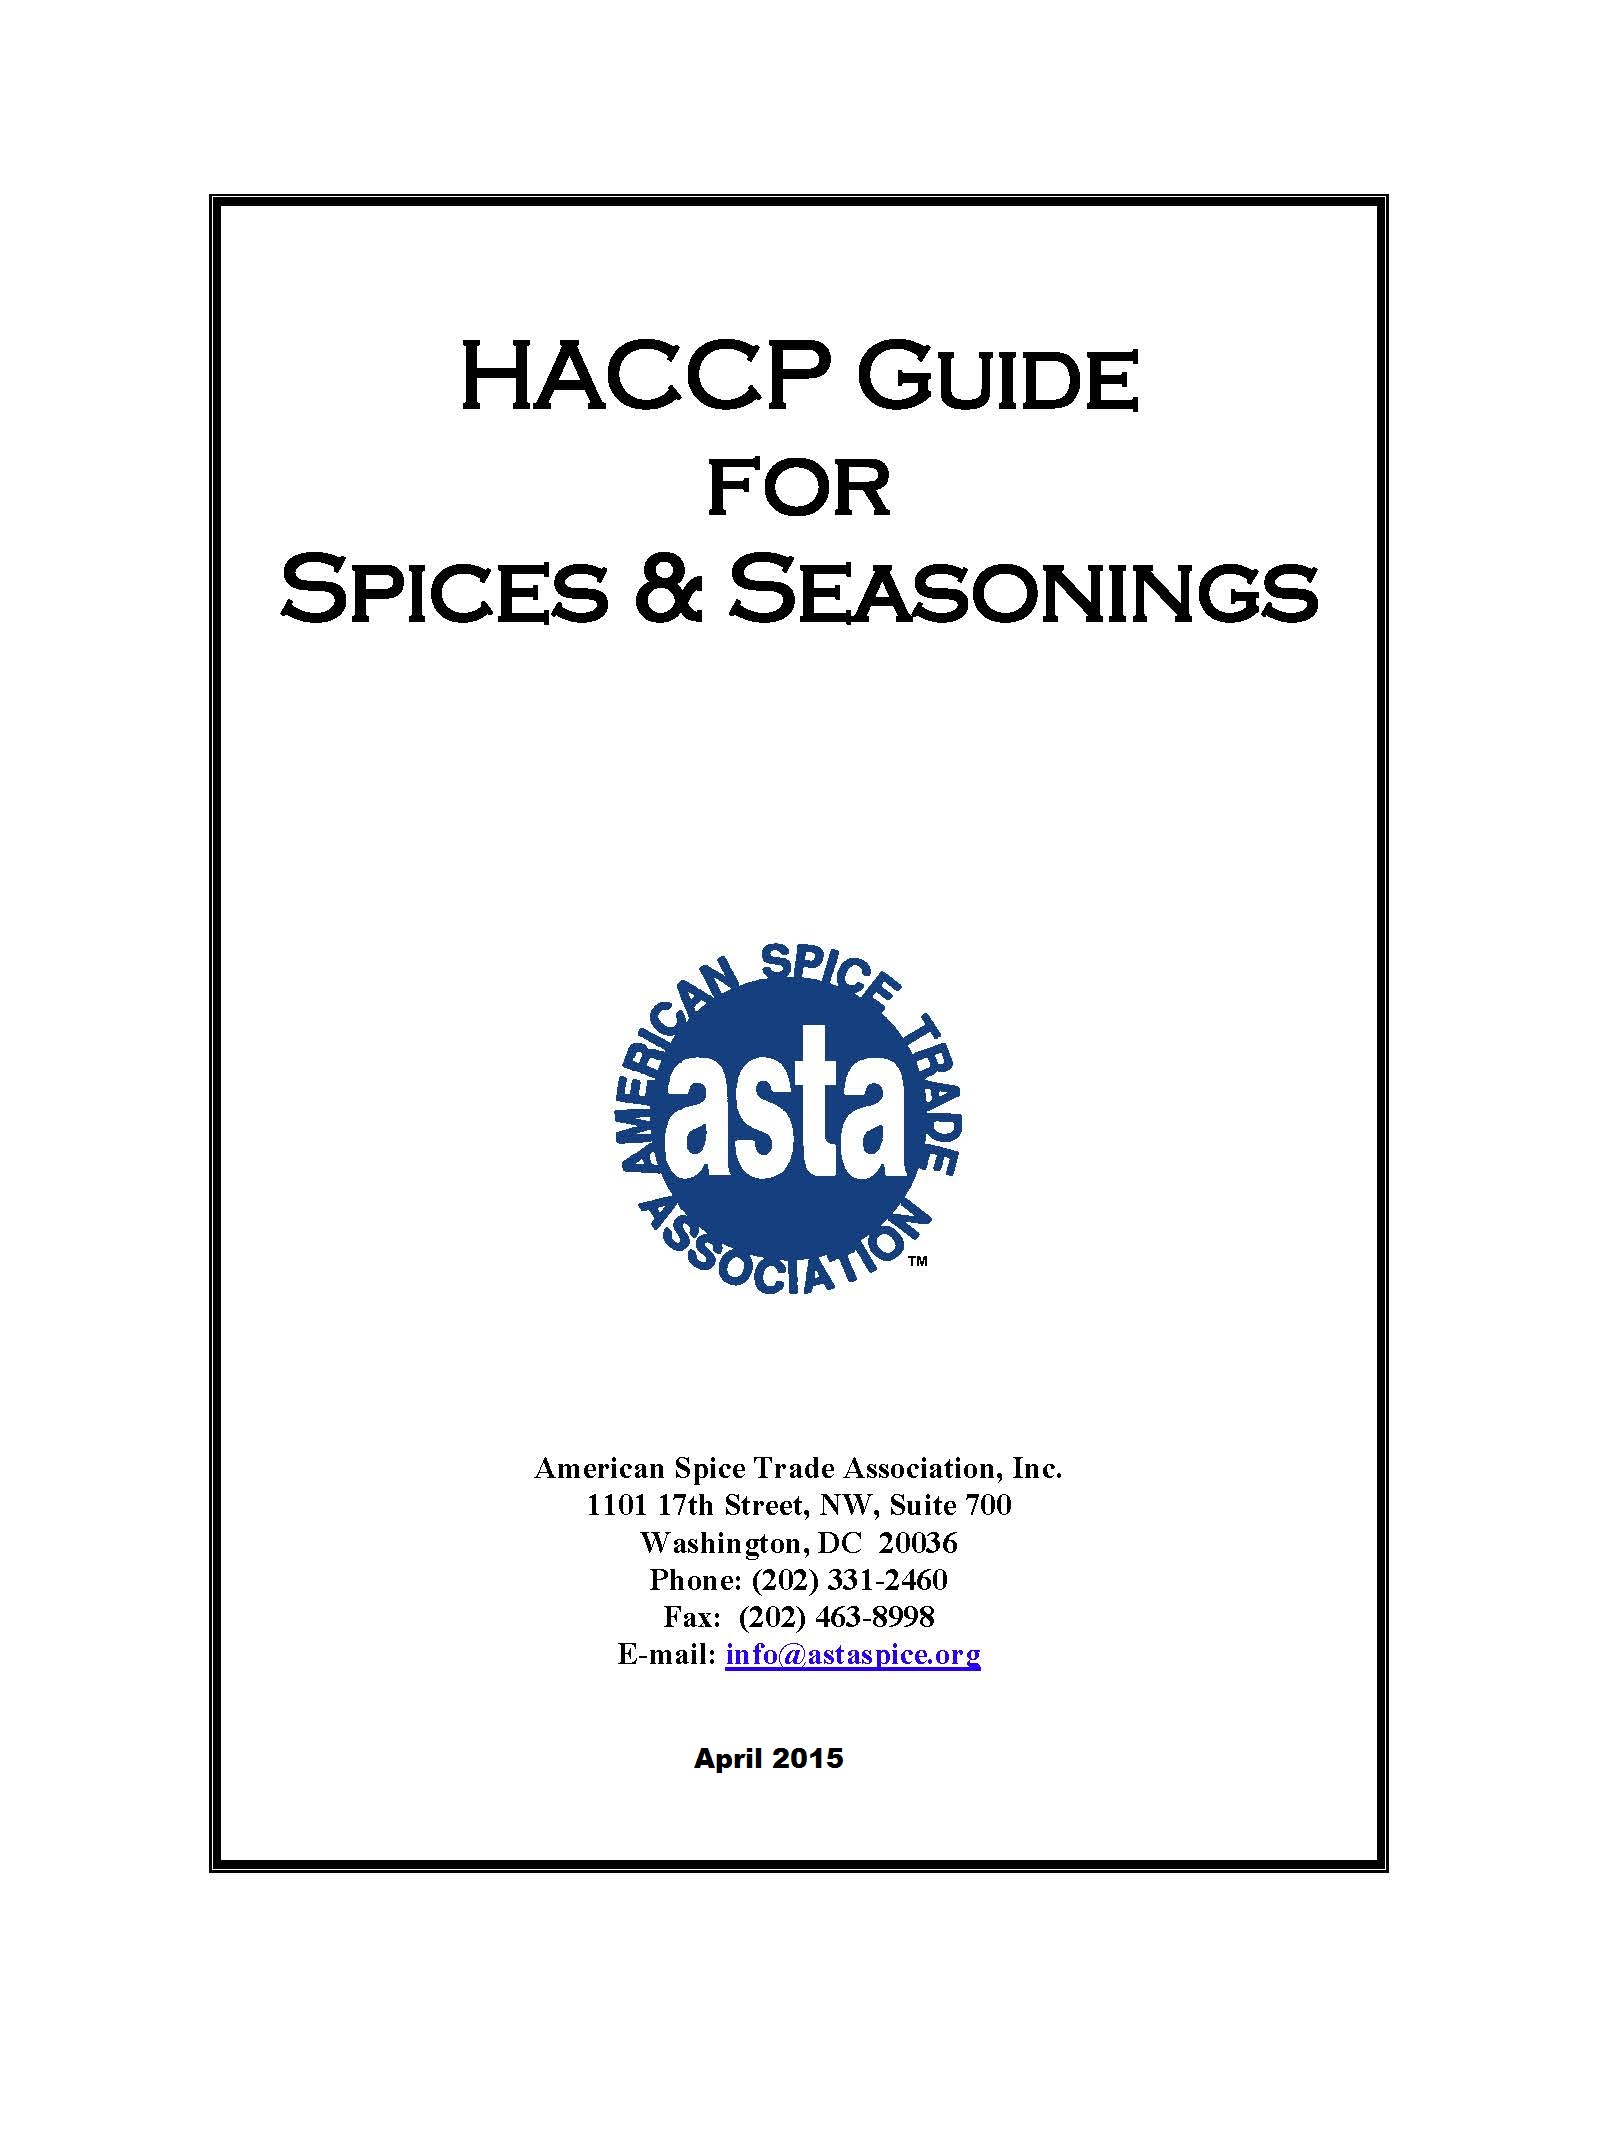 Haccp guide to spices and seasonings asta the voice of the us 00 haccp cover and index pagespage1 altavistaventures Gallery